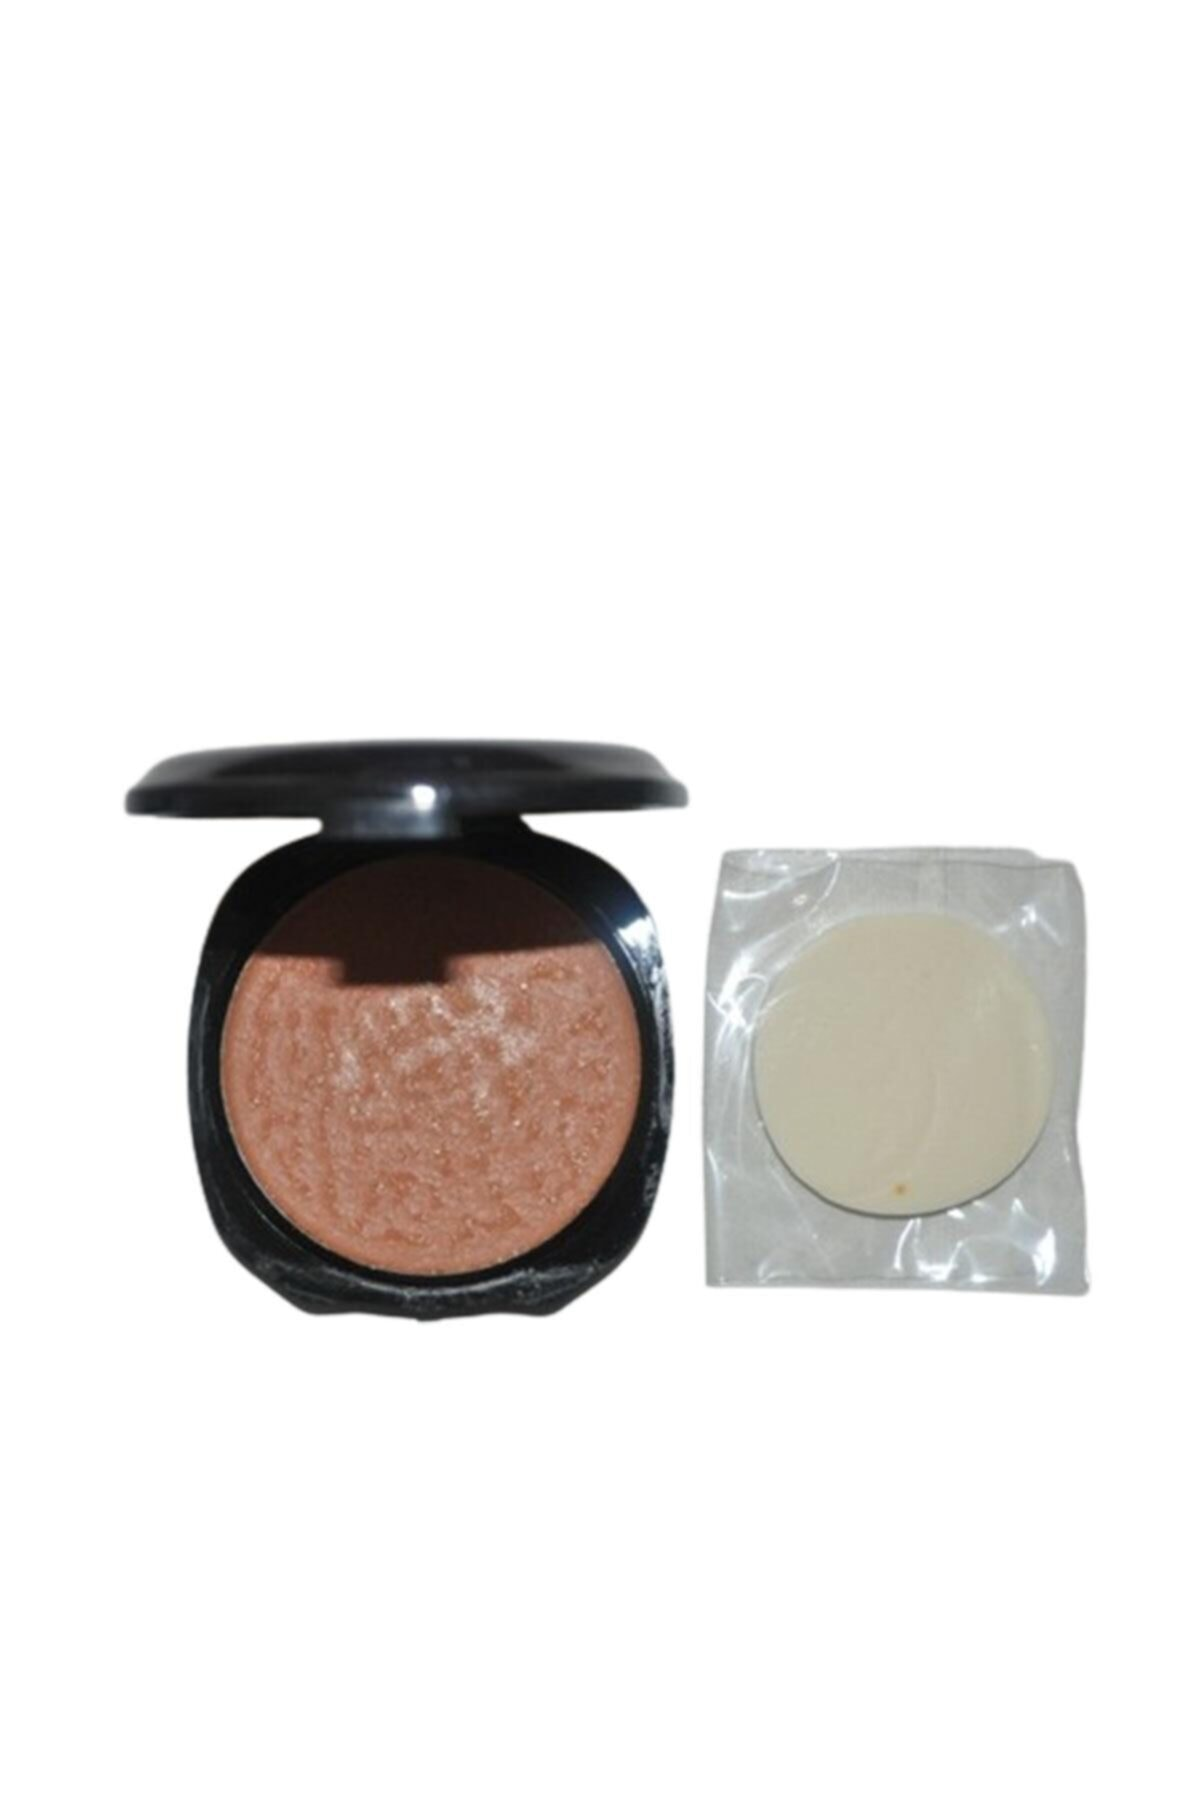 Catherine Arley Silky Touch Cream Compact 06 1